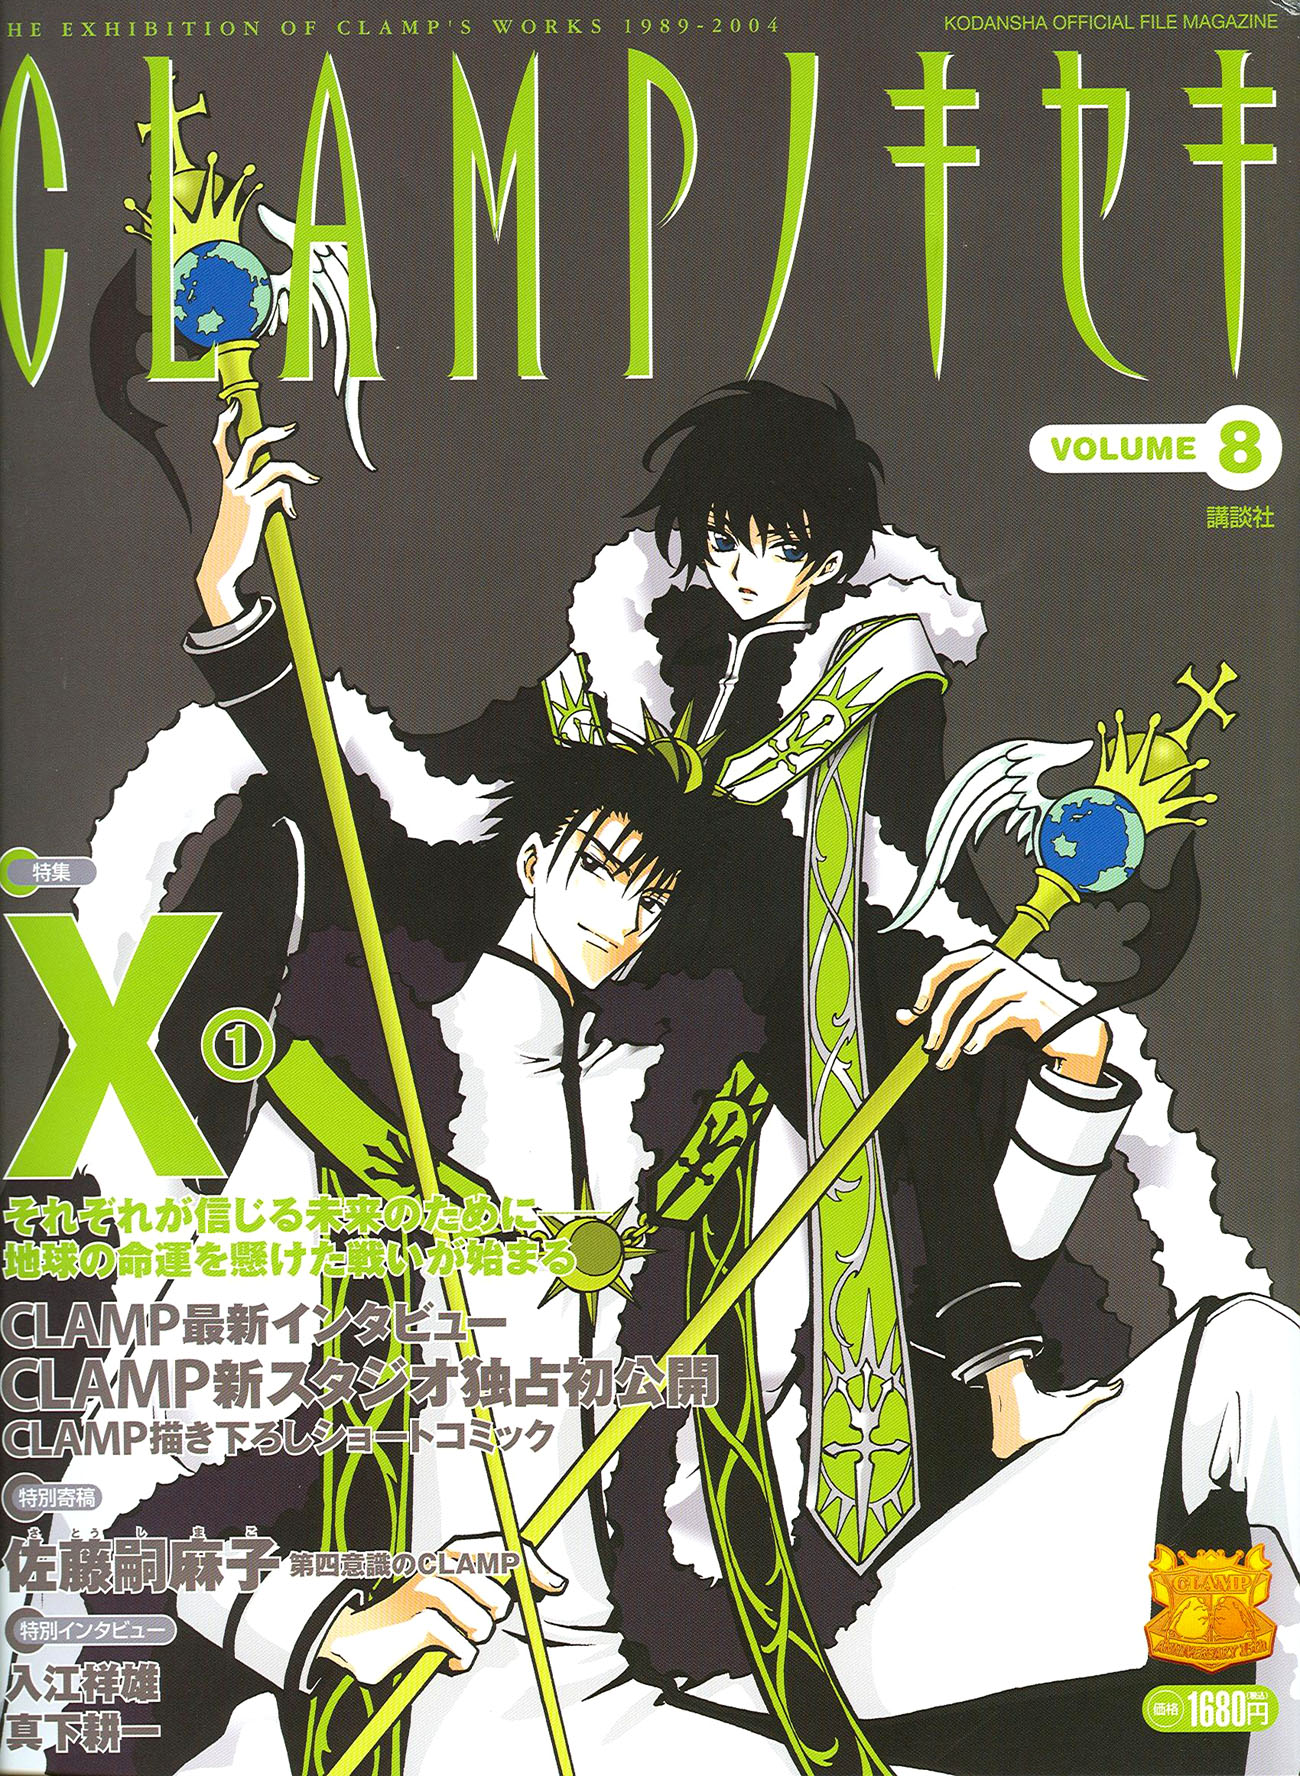 Clamp No Kiseki vol 8